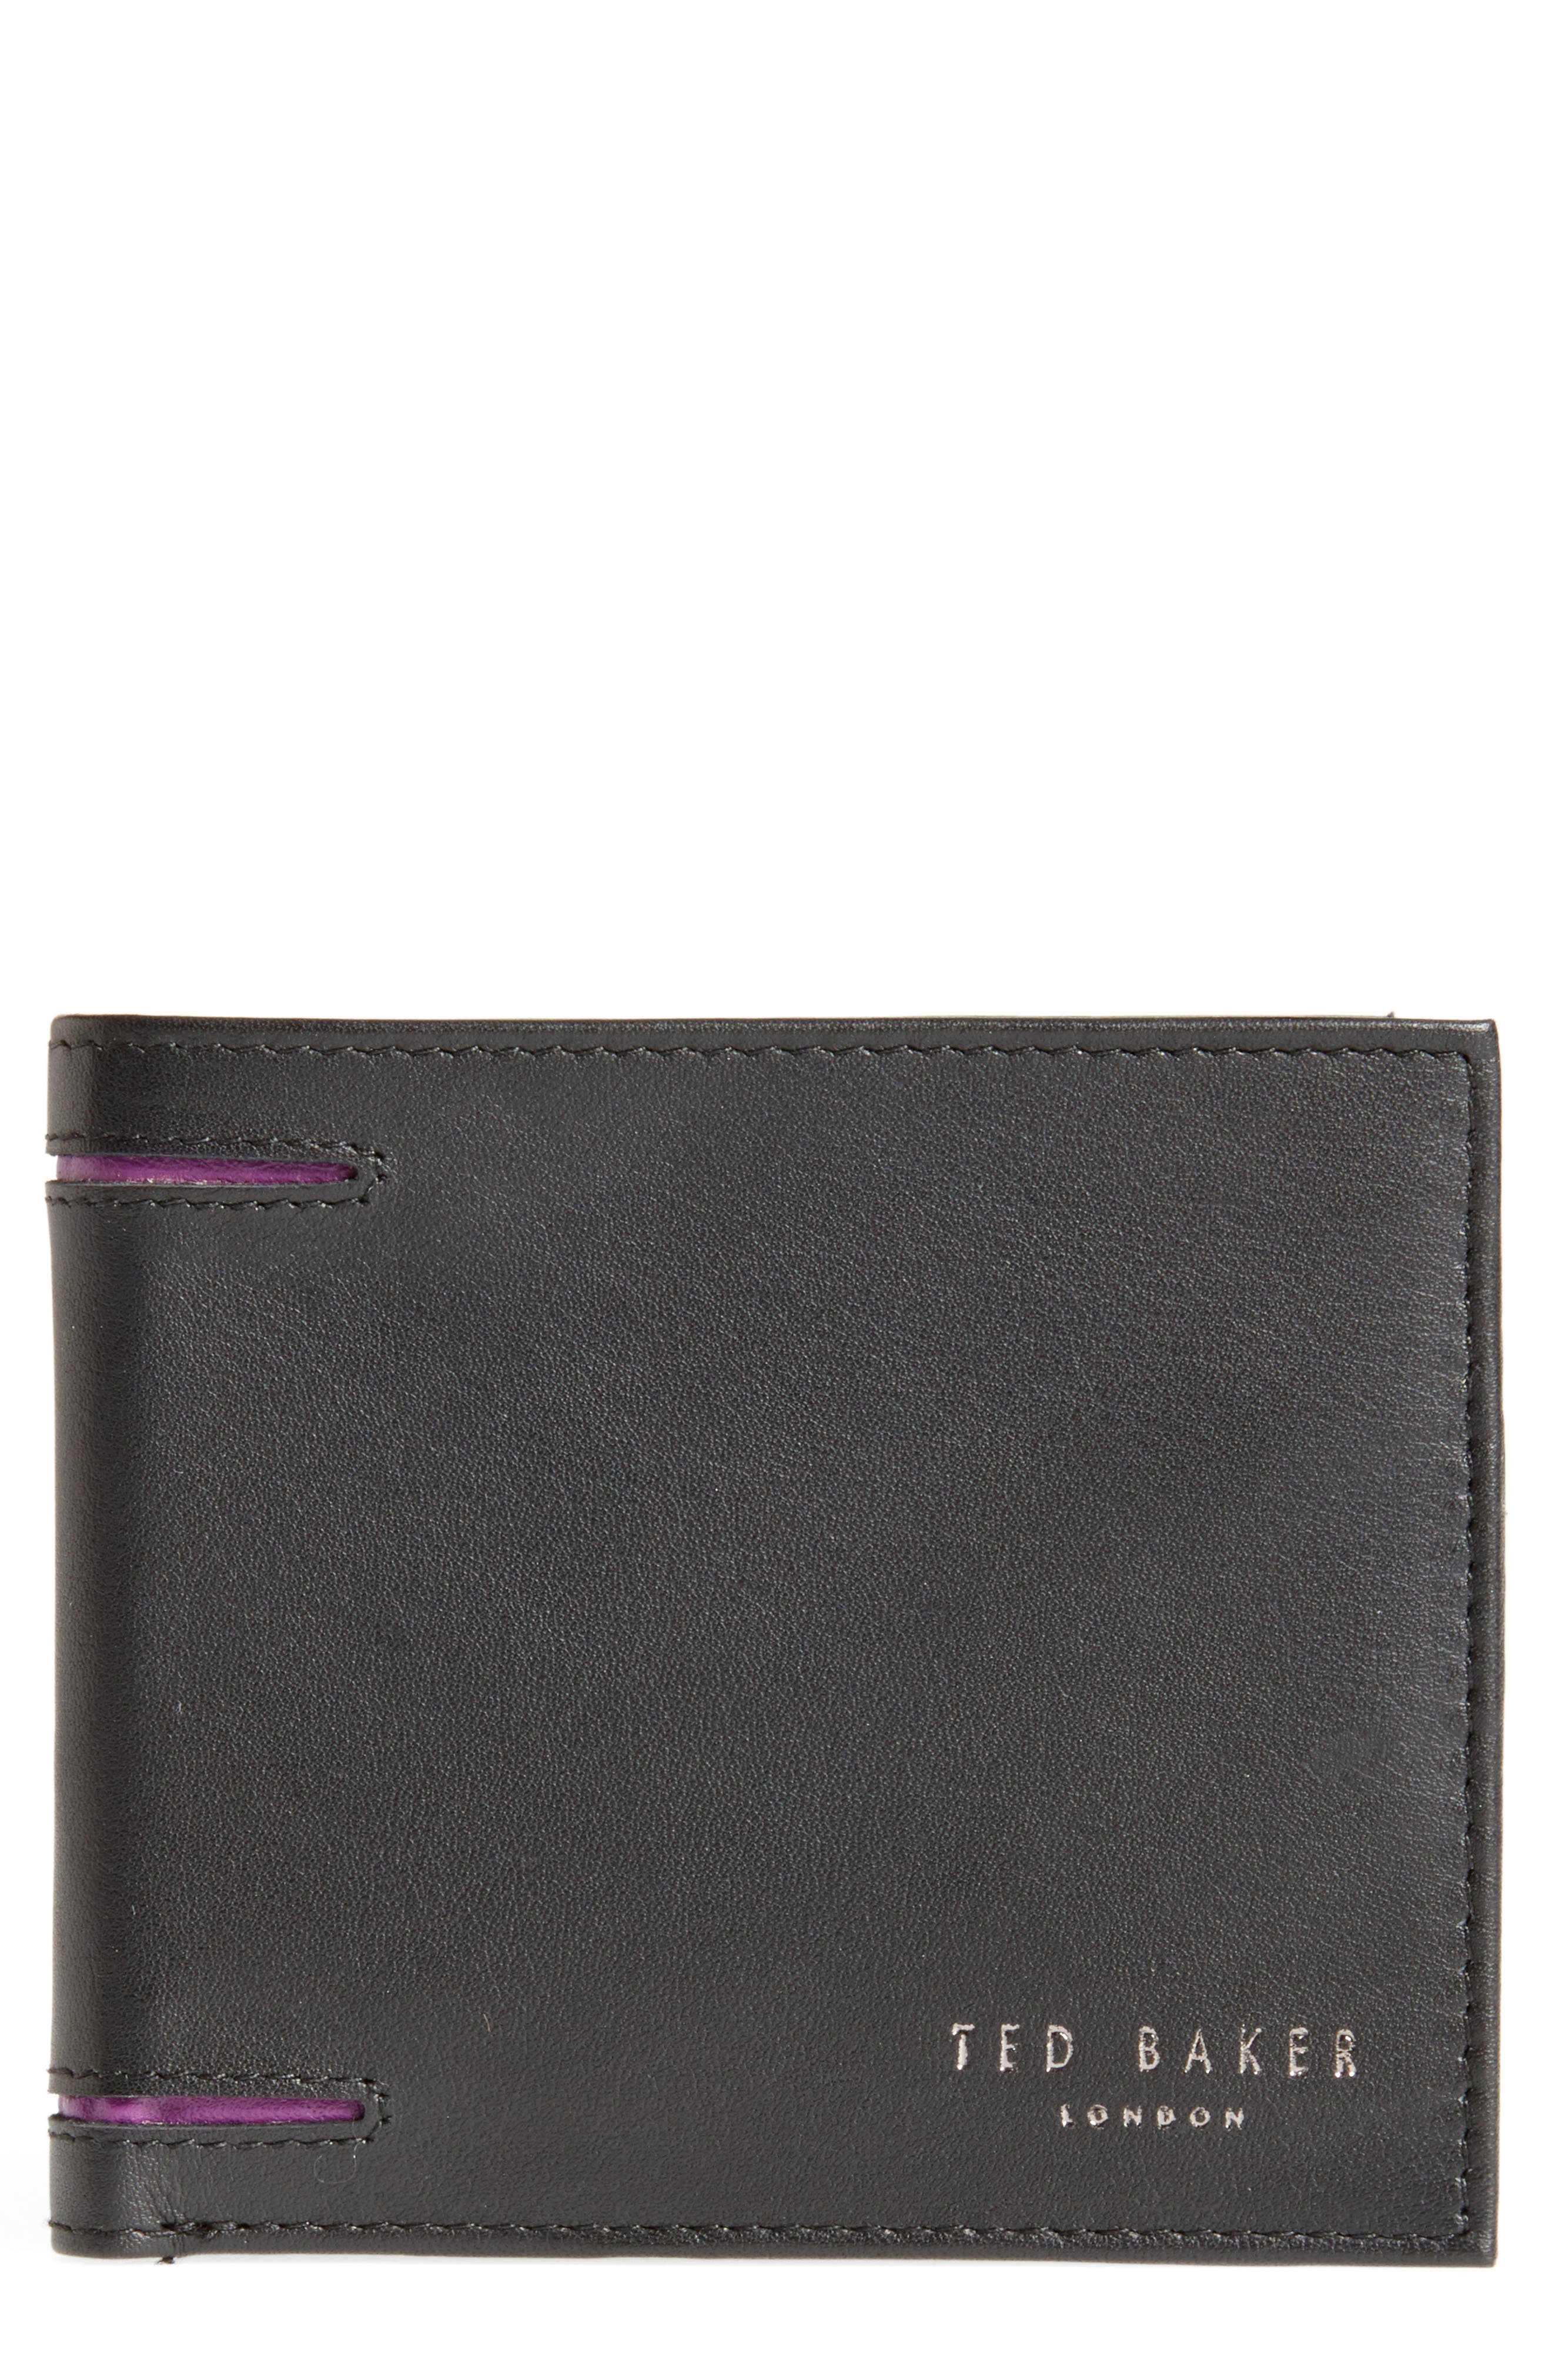 Figgy Inset Spine Leather Wallet,                         Main,                         color, 001